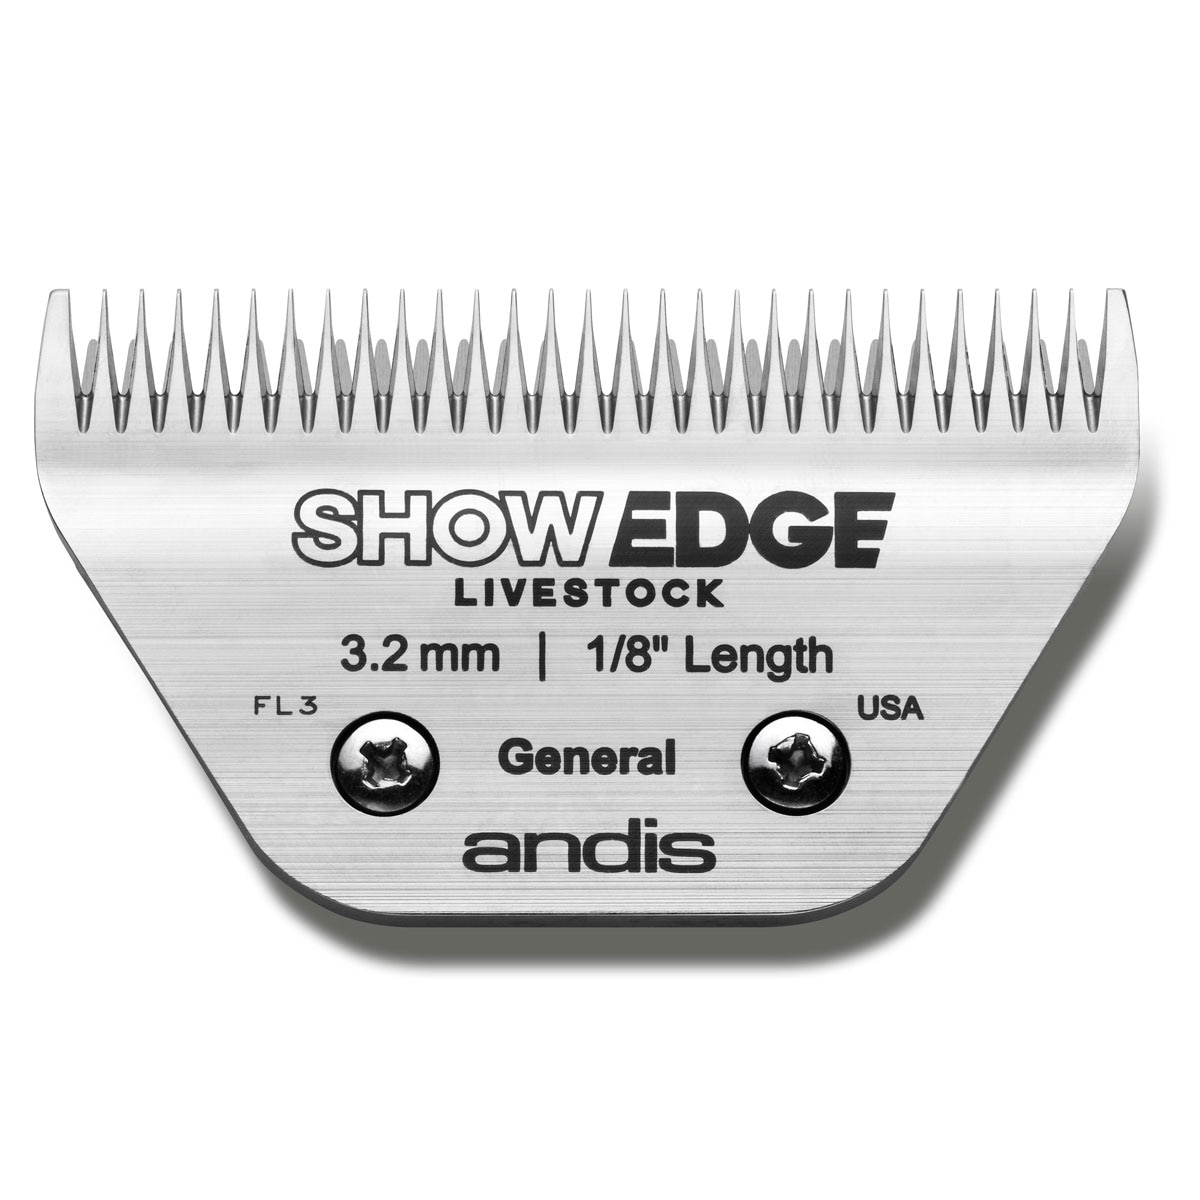 Andis ShowEdge General Replacement Blade